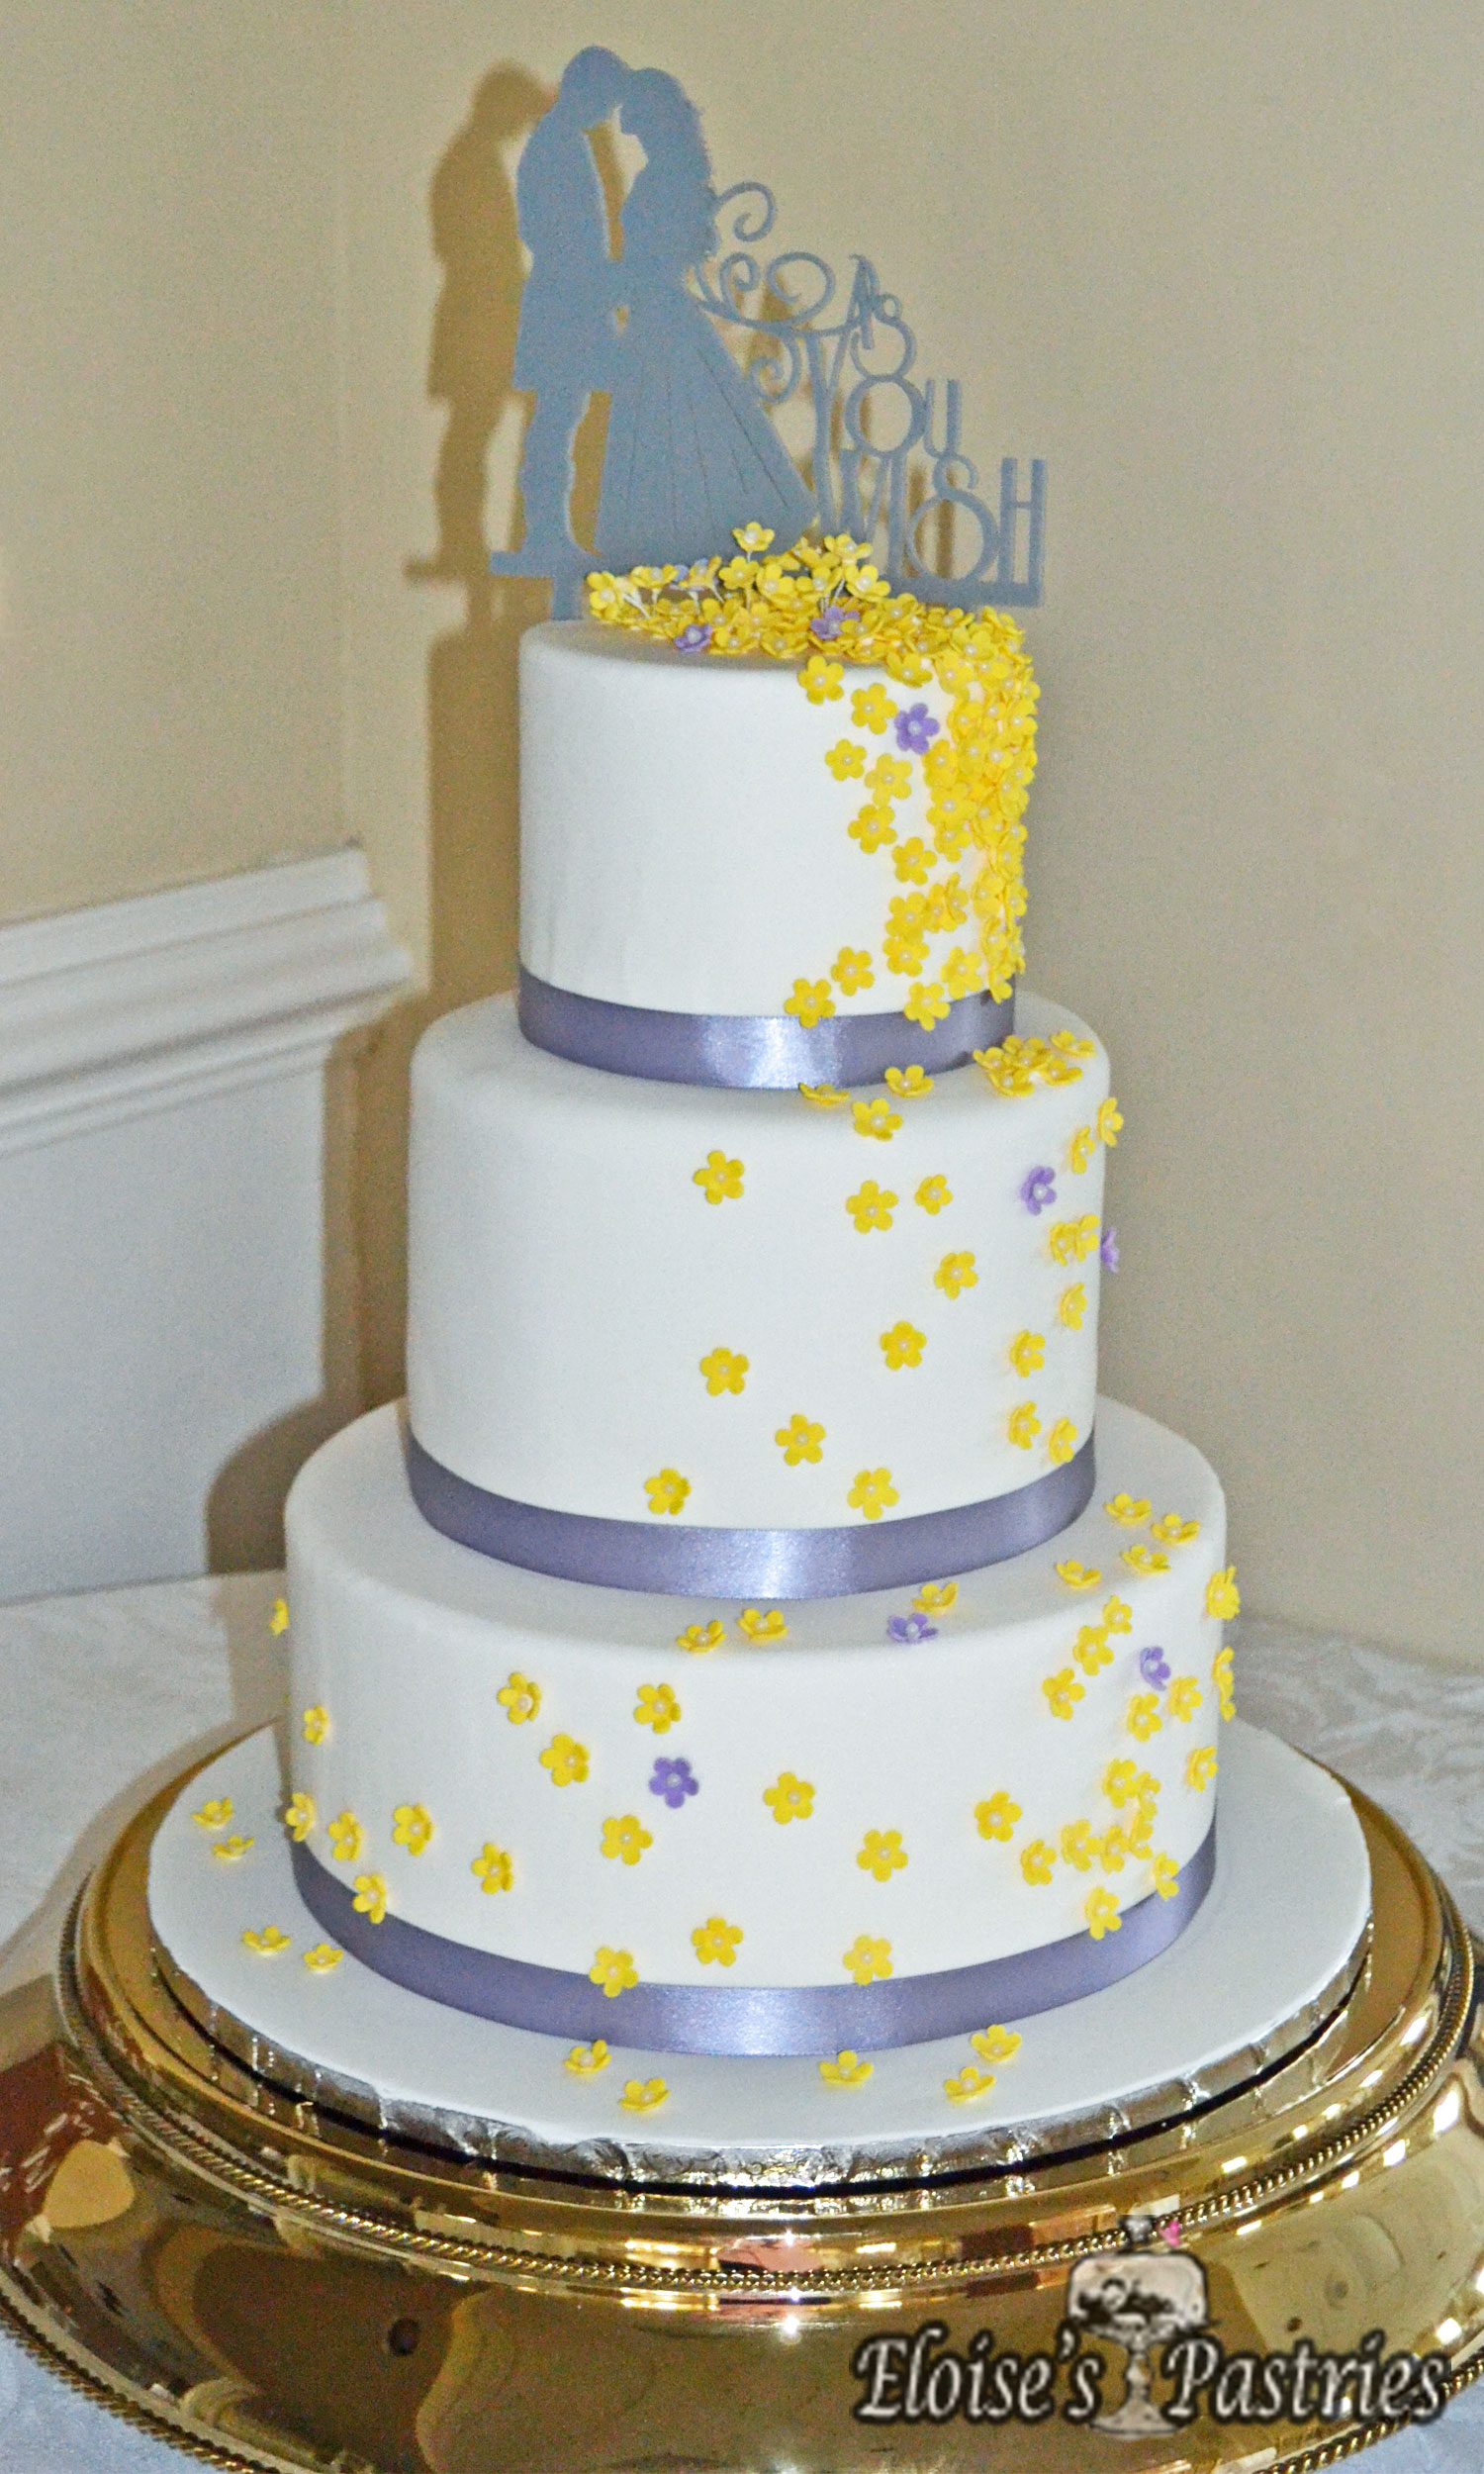 ButterCup and Lavender Wedding Cake